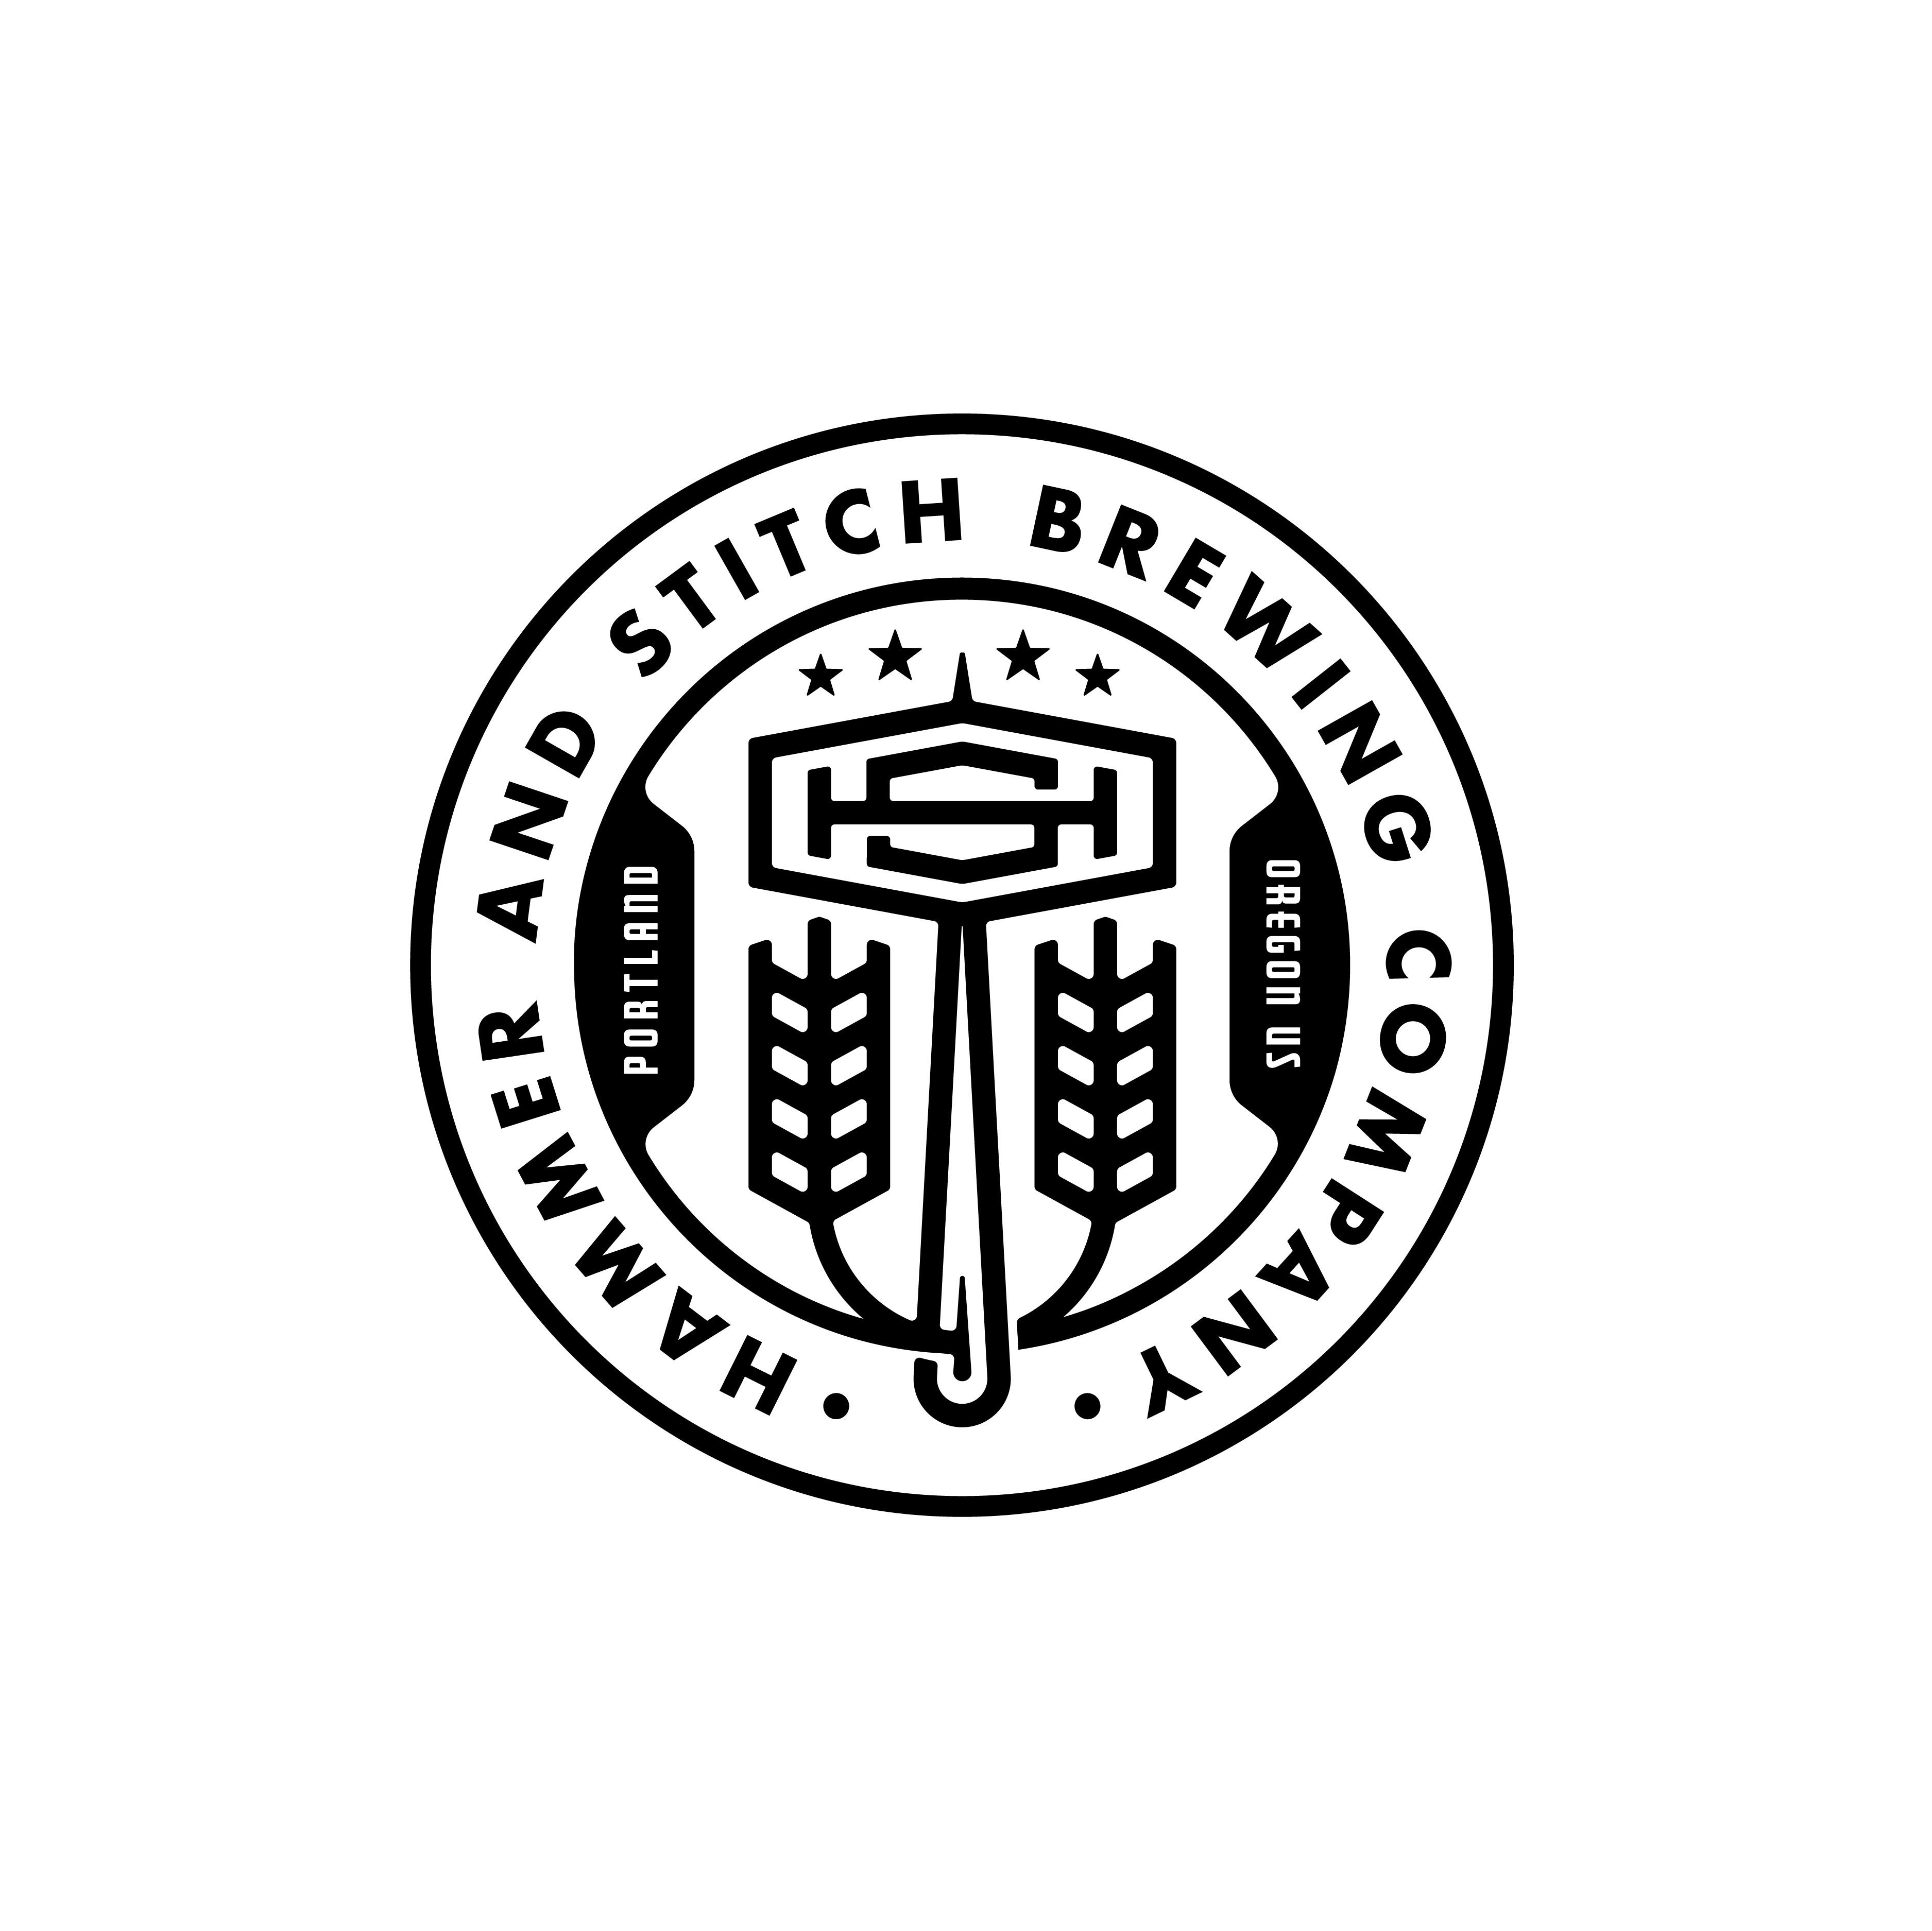 Hammer and Stitch Brewing Co.